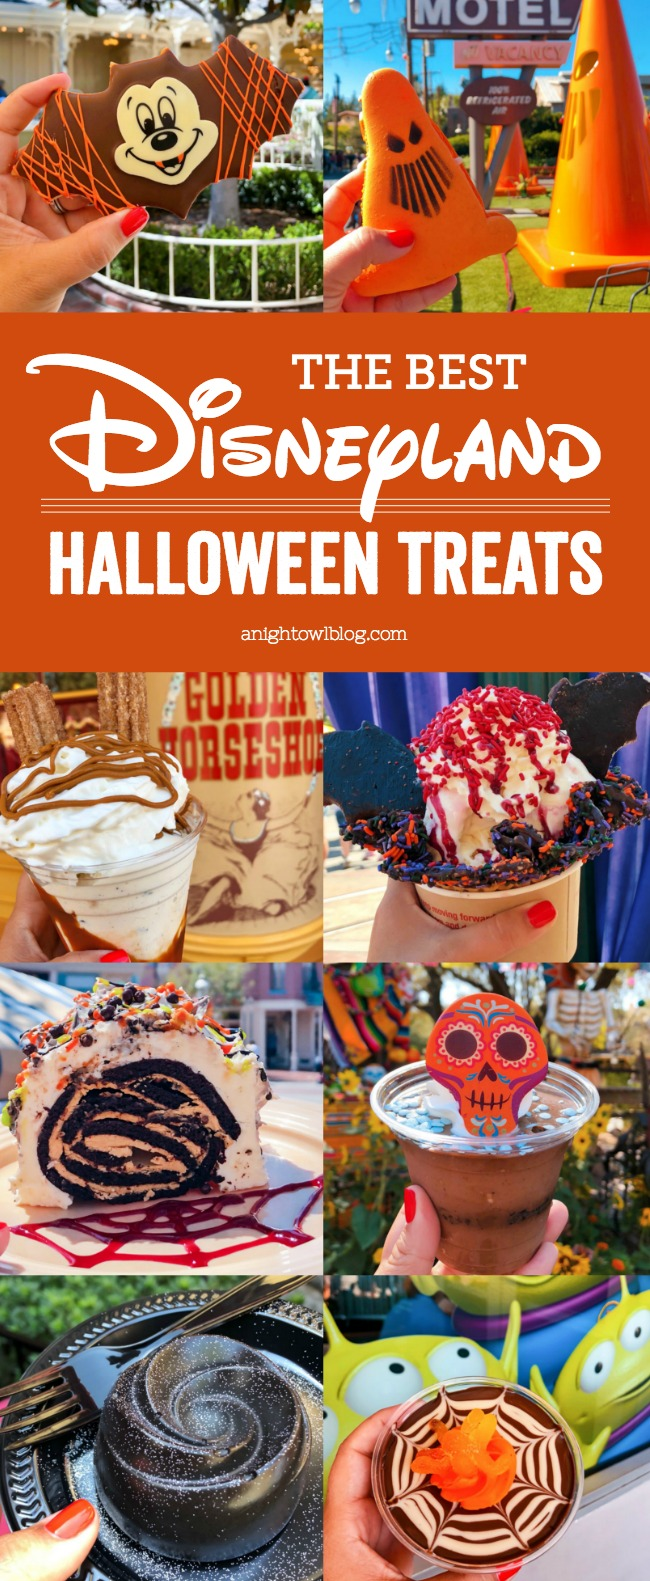 From the Mickey Mummy Macaron to the Bat Wing Raspberry Sundae, check out our picks for The BEST Disneyland Halloween Treats!